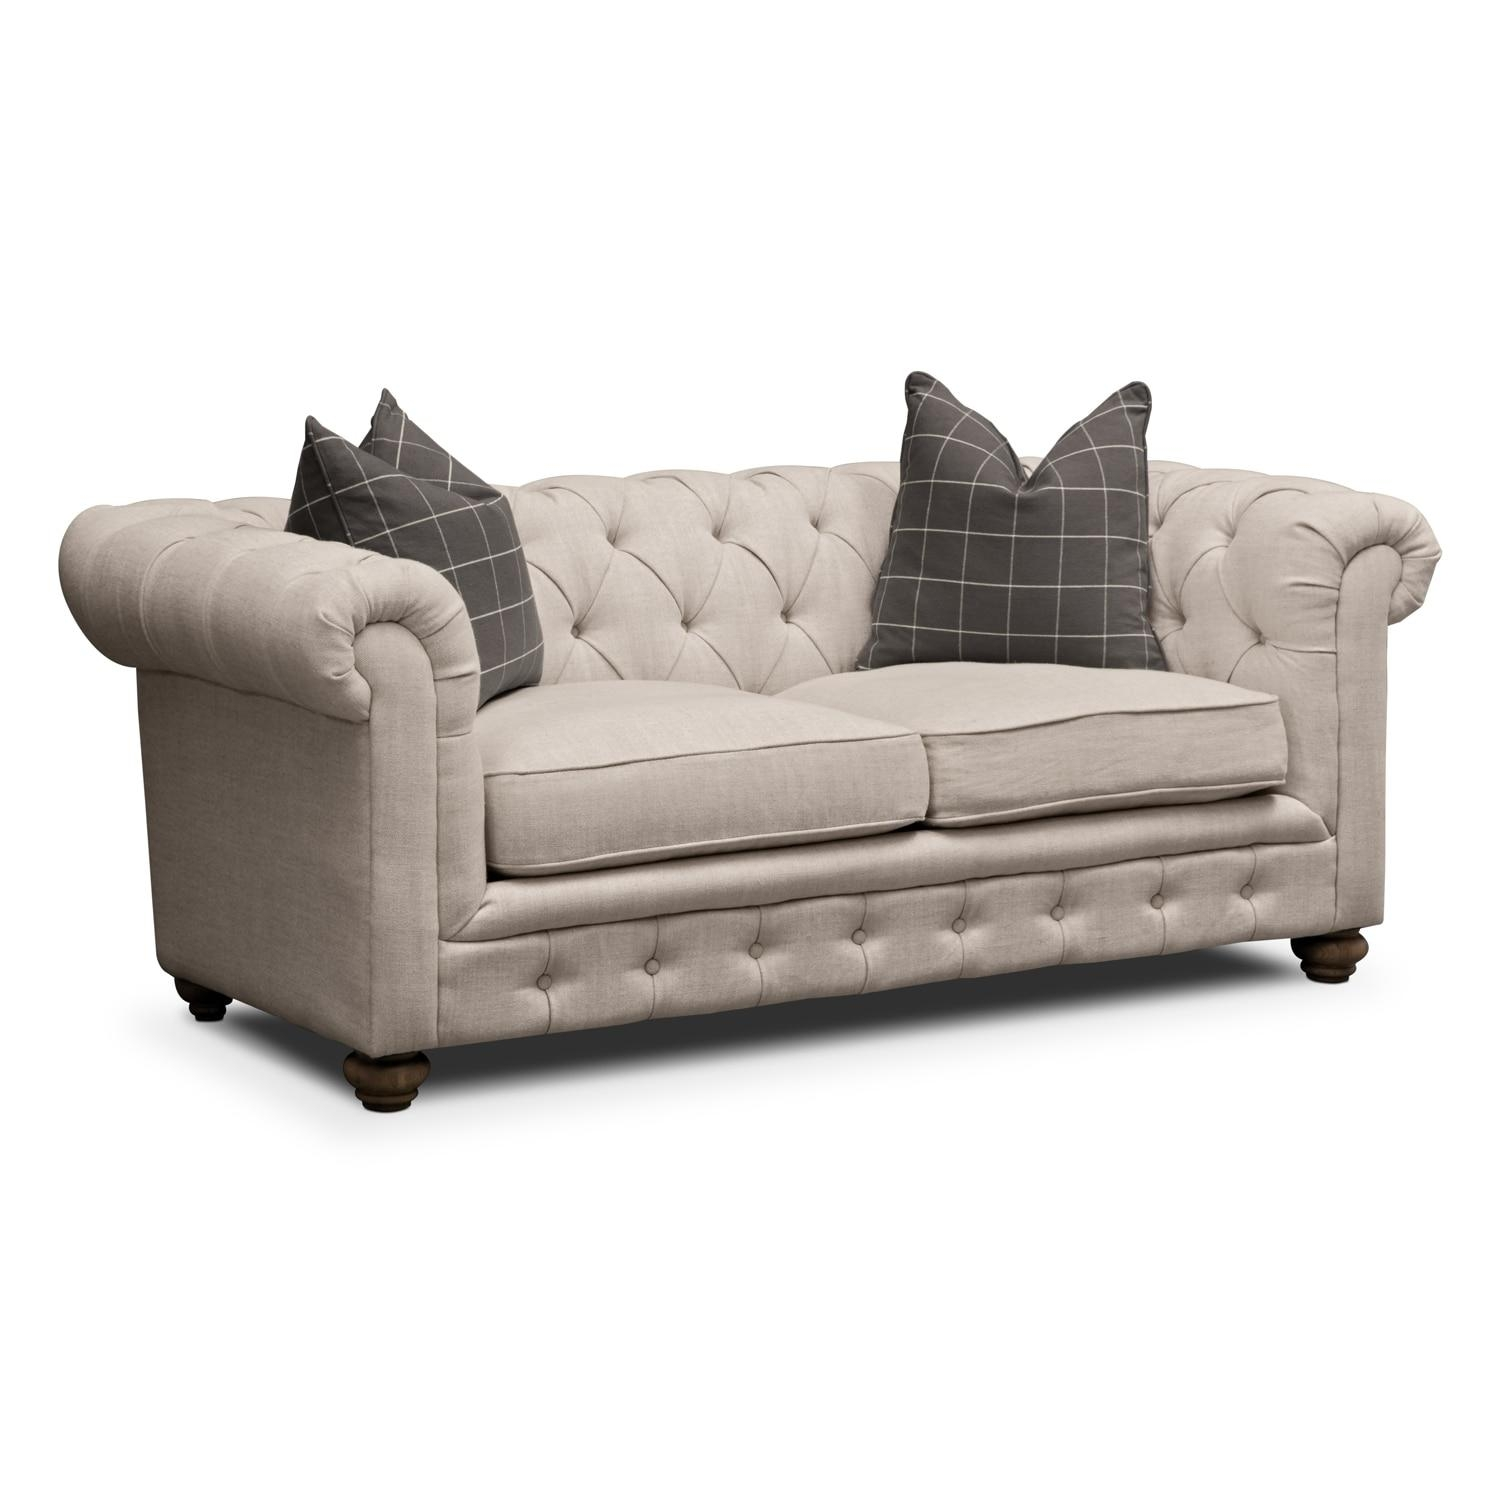 20 photos sofa and accent chair set sofa ideas for Sofa bed and chair set